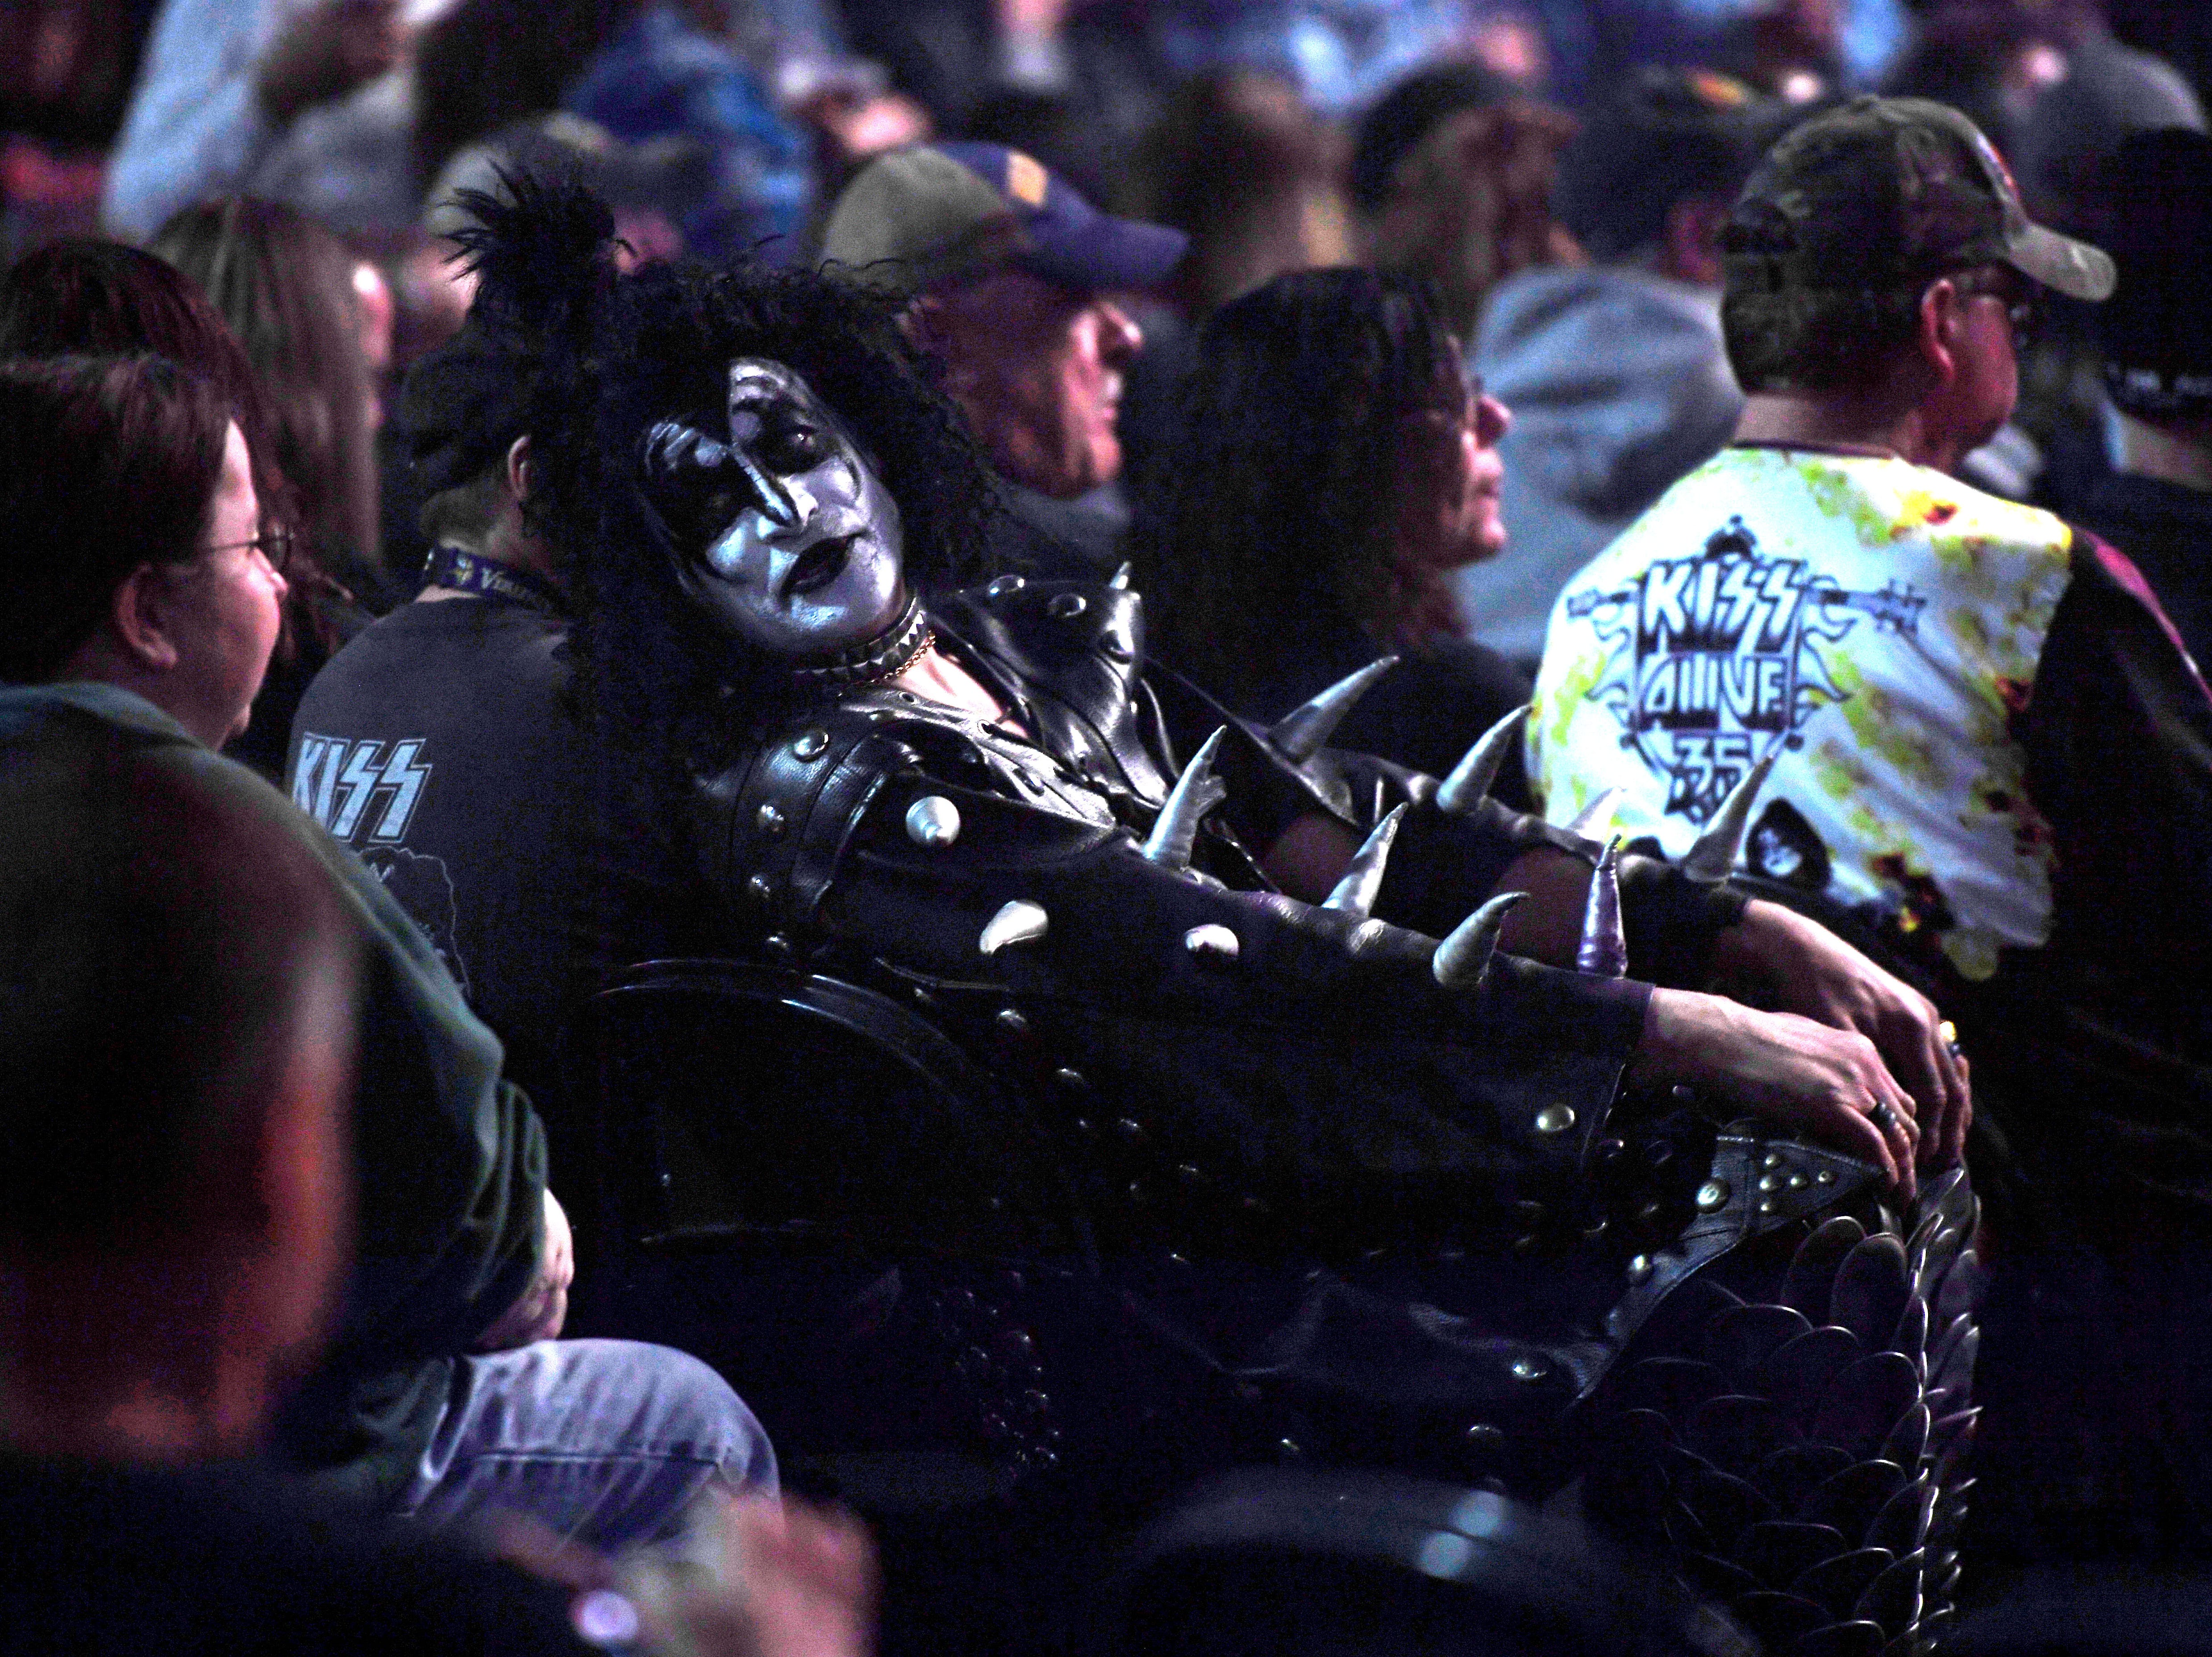 A KISS fan wears a full on costume to the KISS End of the Road World Tour Wednesday, March 6, at the Denny Sanford Premier Center in Sioux Falls. The line up included lead vocalist Paul Stanley, bassist Gene Simmons, guitarist Tommy Thayer and drummer Eric Singer.